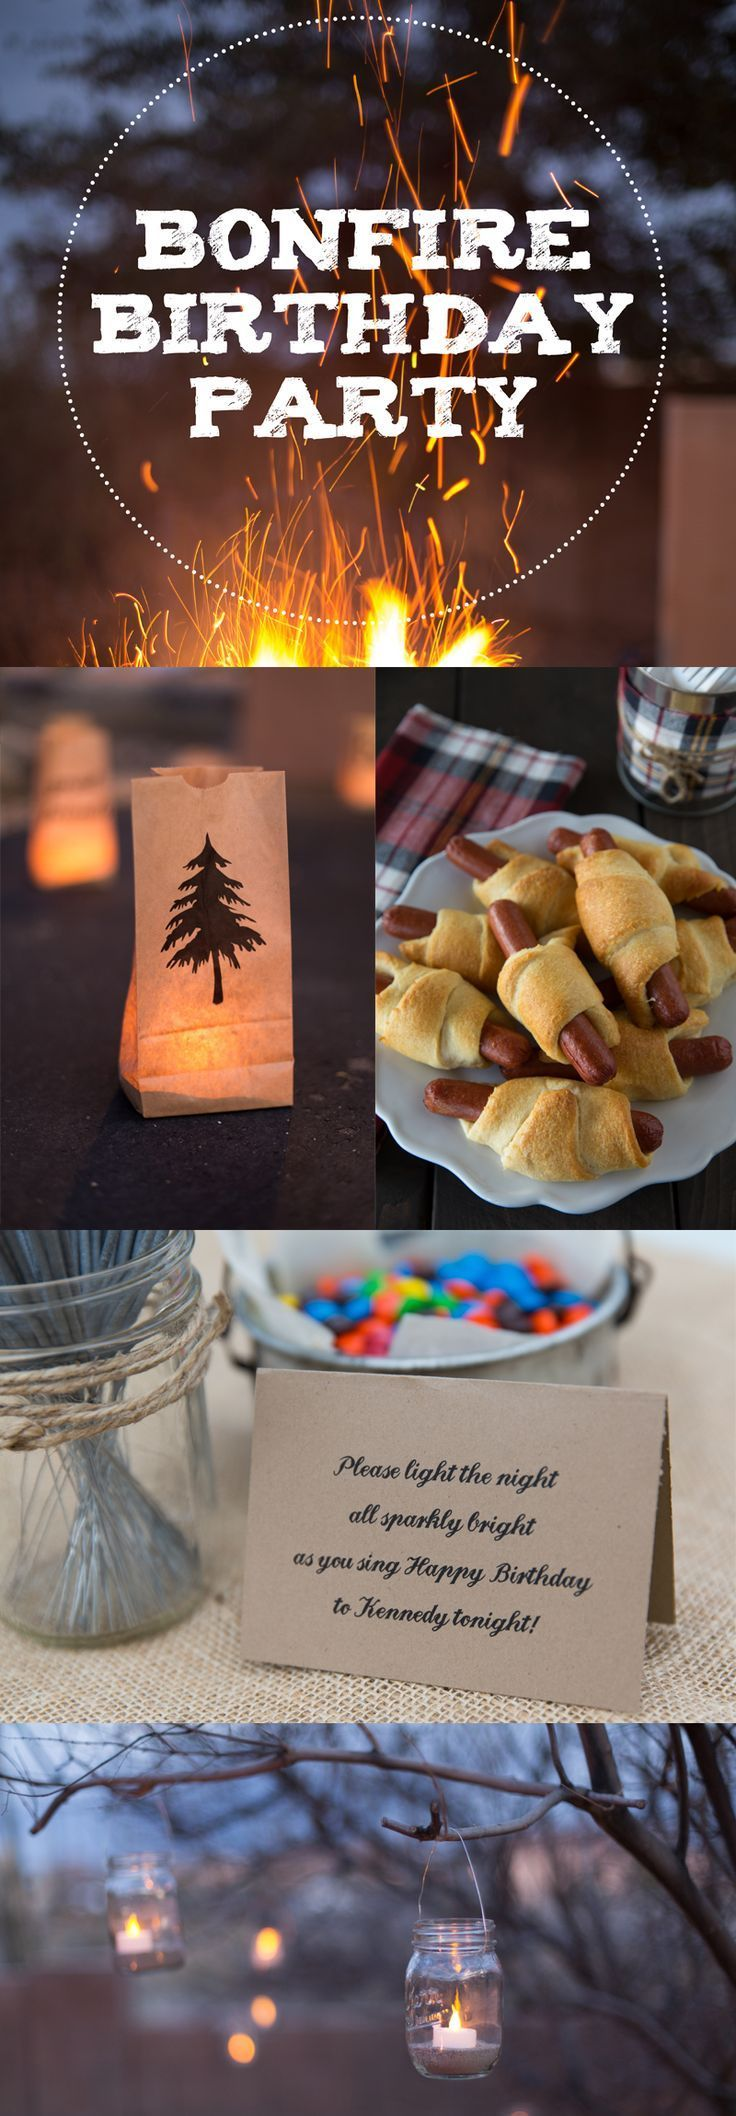 Bonfire Birthday Party Ideas for Food, Decorations and Fun – #birthday #bonfire …